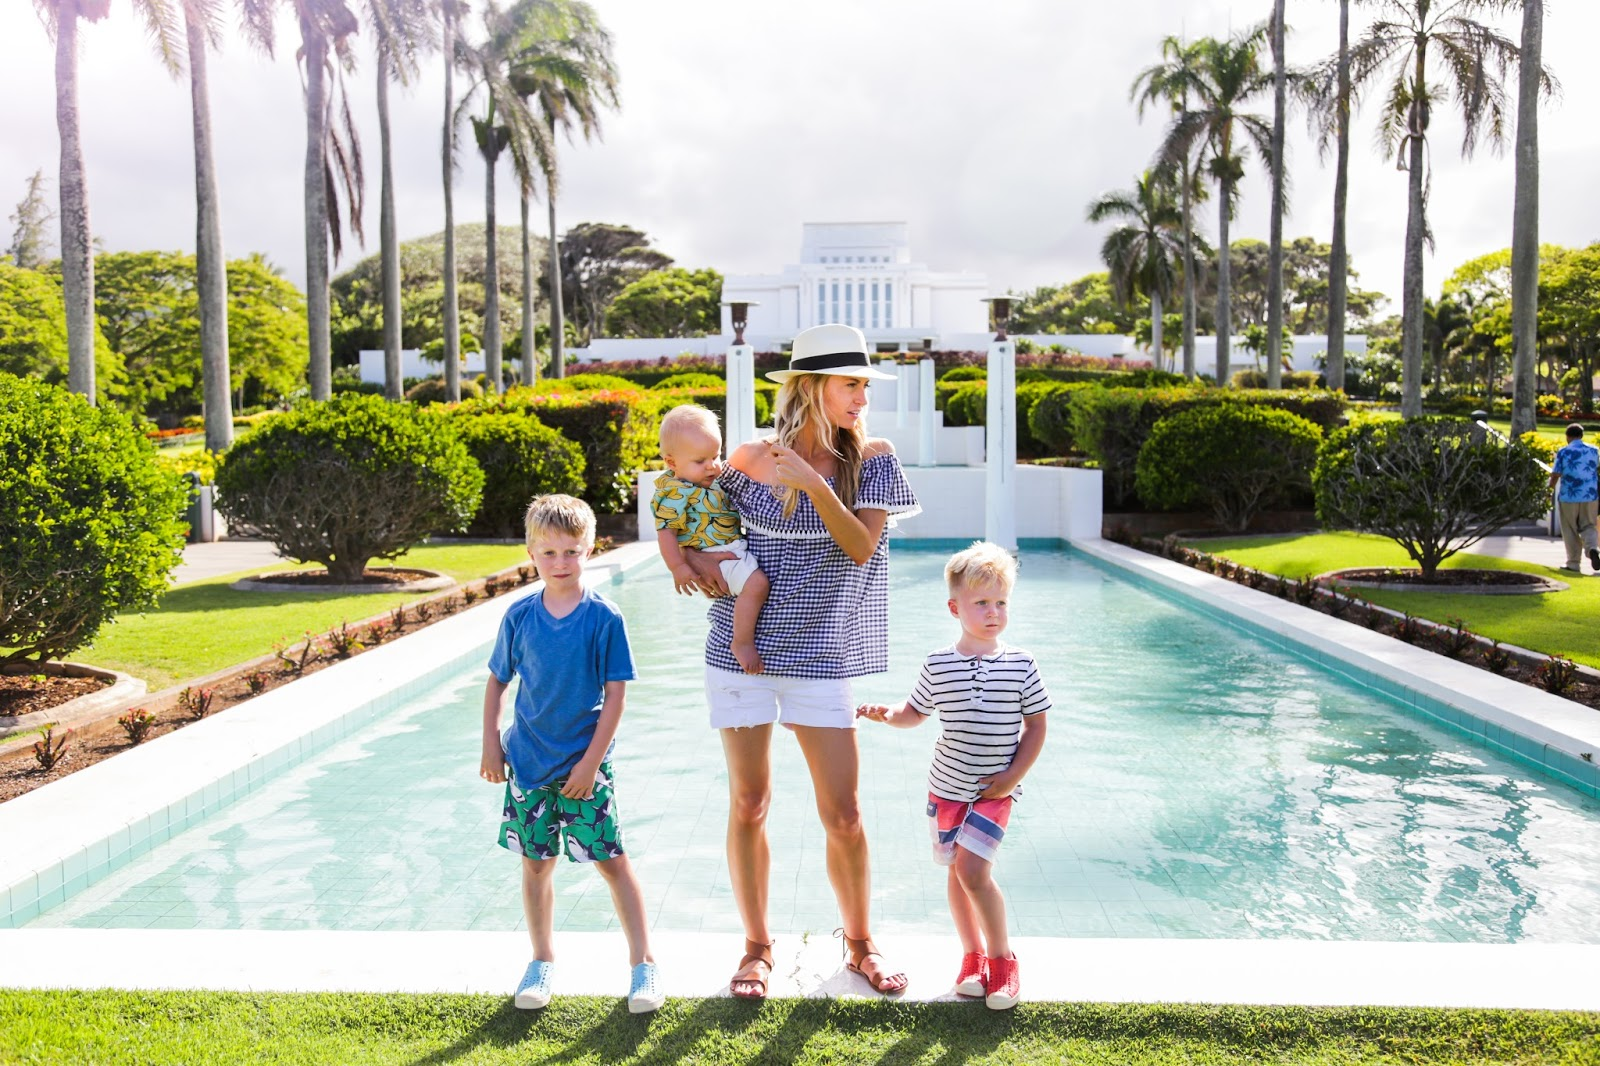 11 TIPS ON HOW TO SHOOT A FAMILY VACATION VIDEO LIKE A PRO + OUR HAWAII TRIP (PART 2)